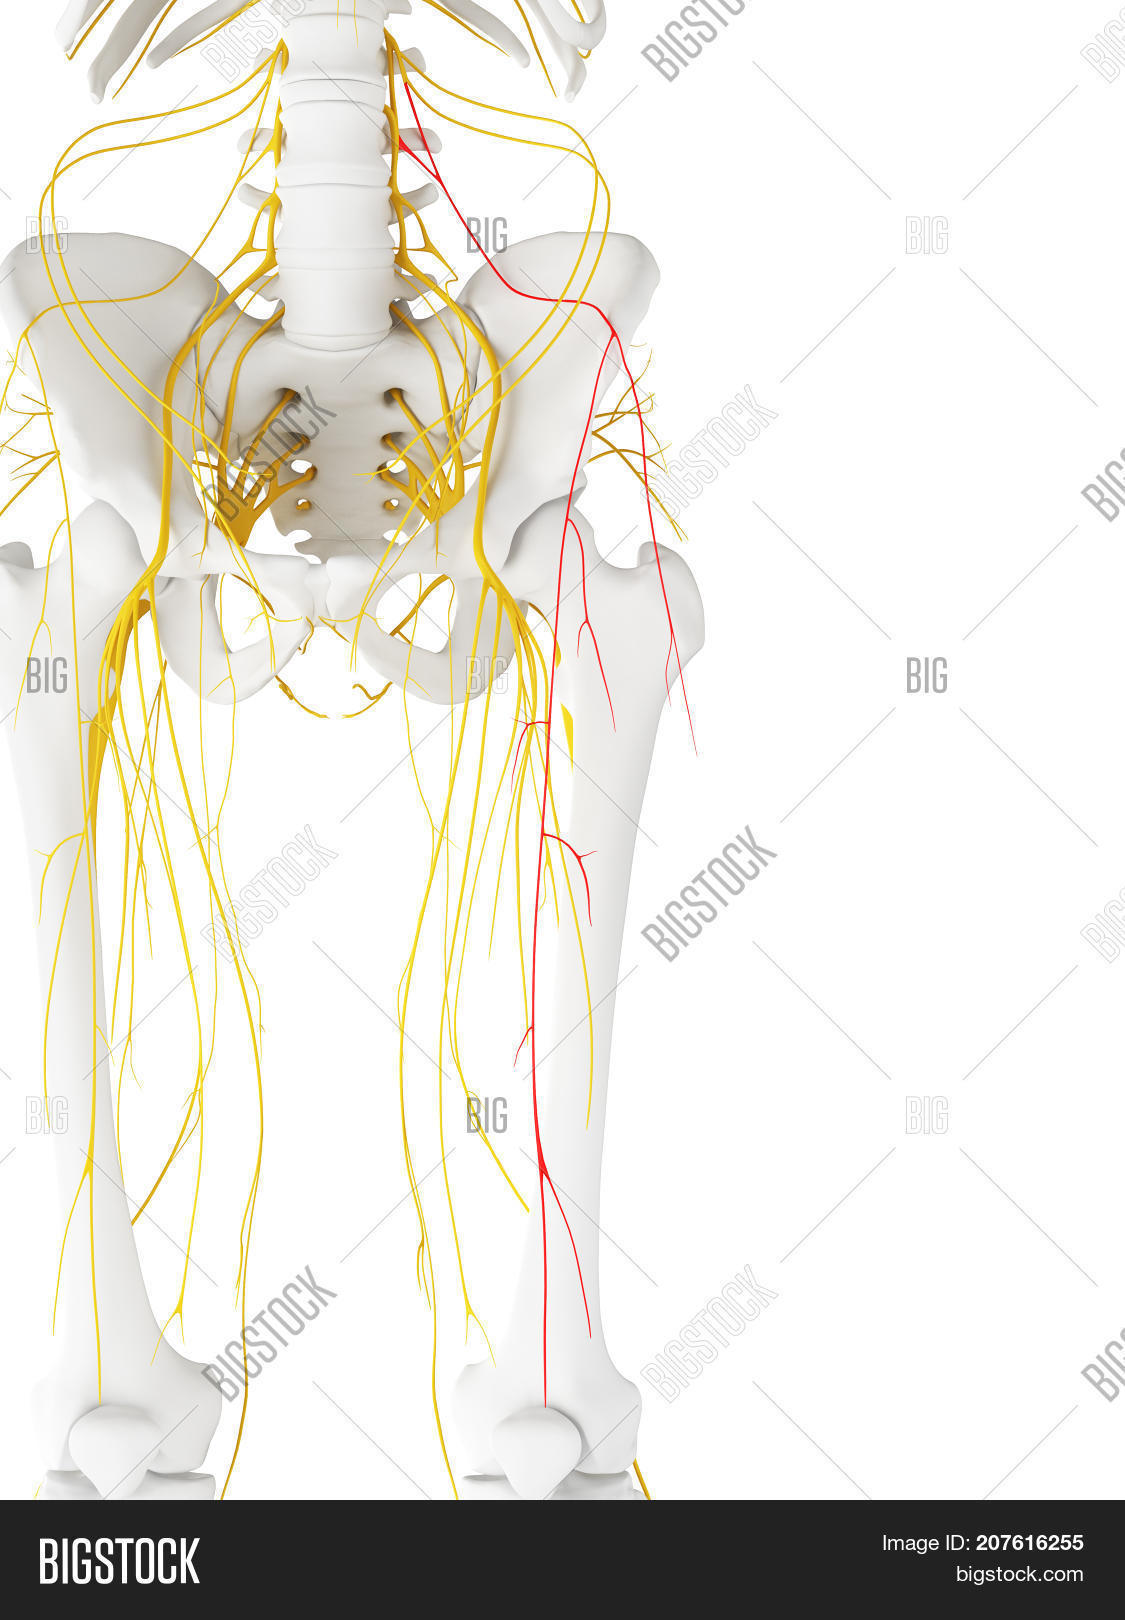 3d Rendered Medically Image Photo Free Trial Bigstock